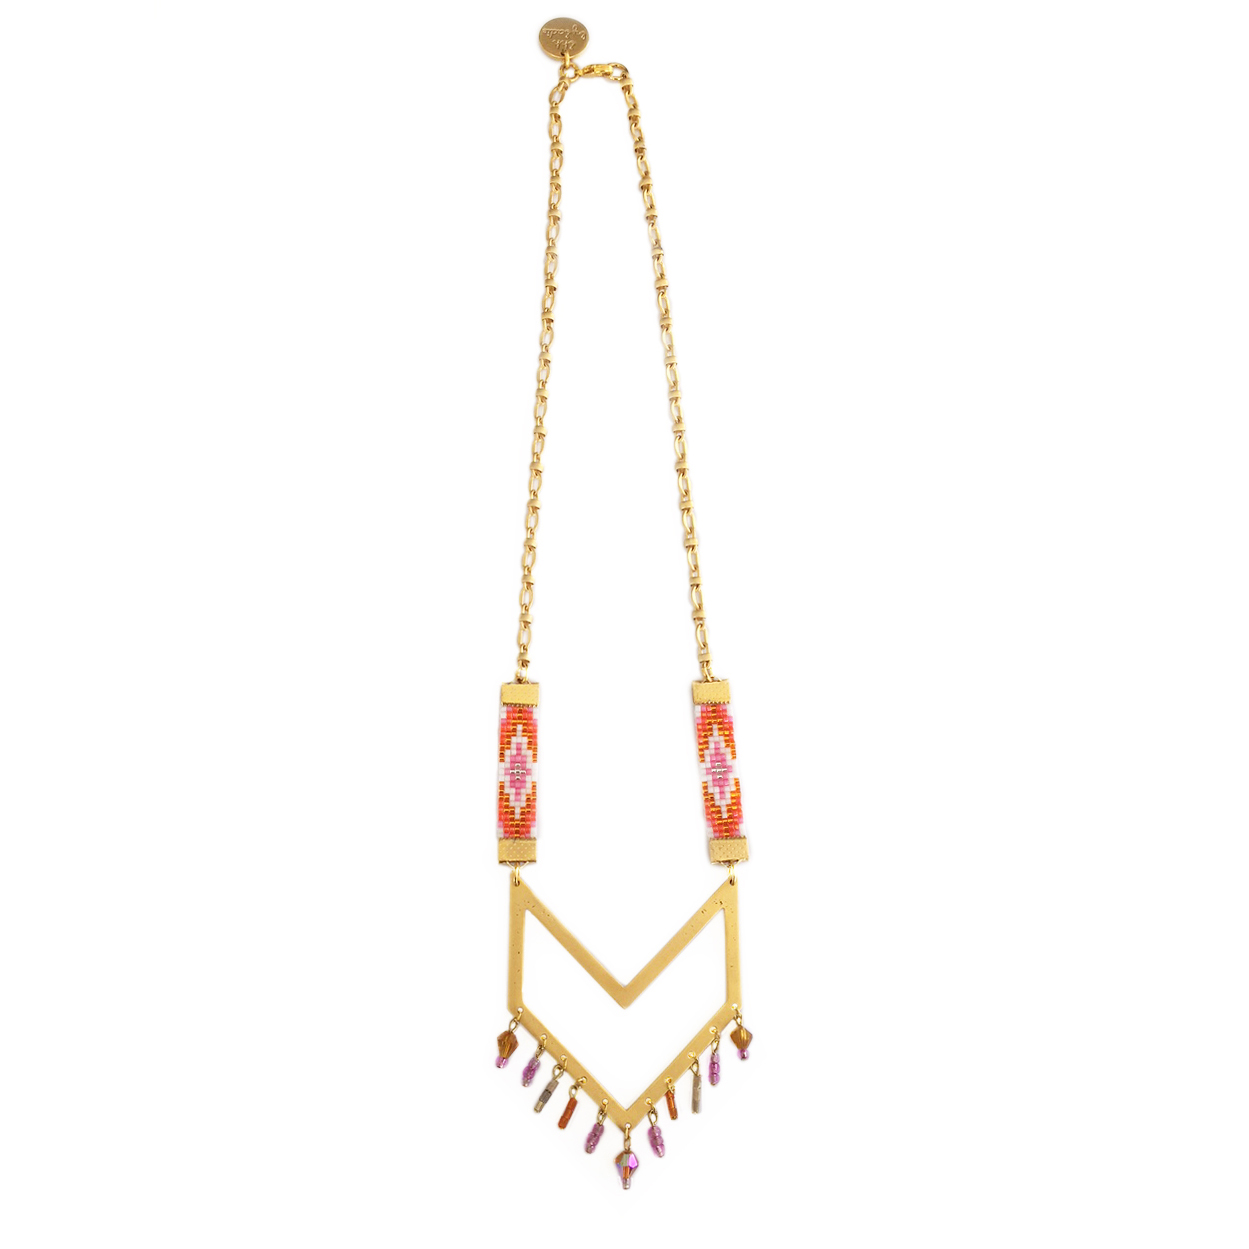 orange resort wear statement necklace by British jewellery designer shh by sadie